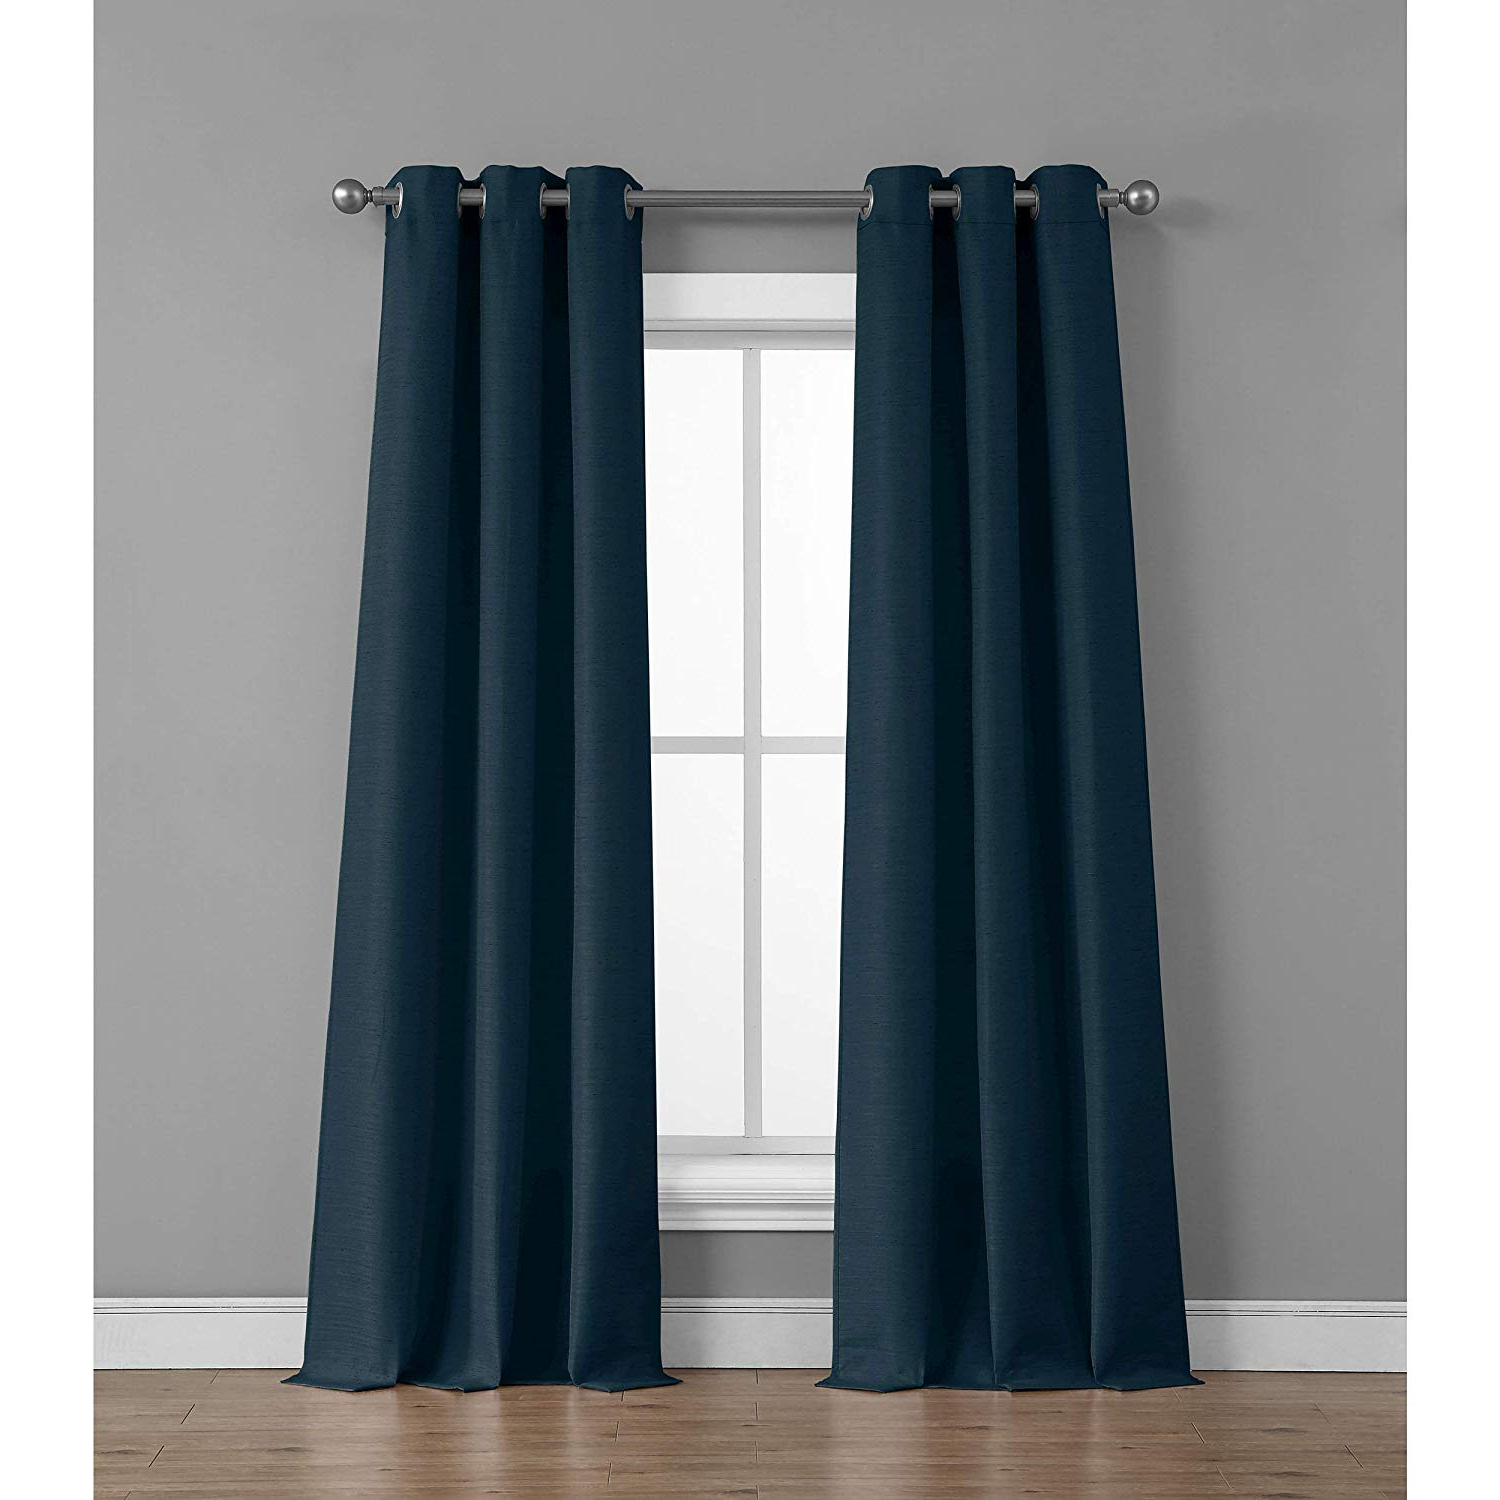 Fashionable Raw Silk Thermal Insulated Grommet Top Curtain Panel Pairs Within Tribeca Home Raw Faux Silk Curtain Panel Pair, 76 In. X 84 In, Indigo (Gallery 14 of 20)